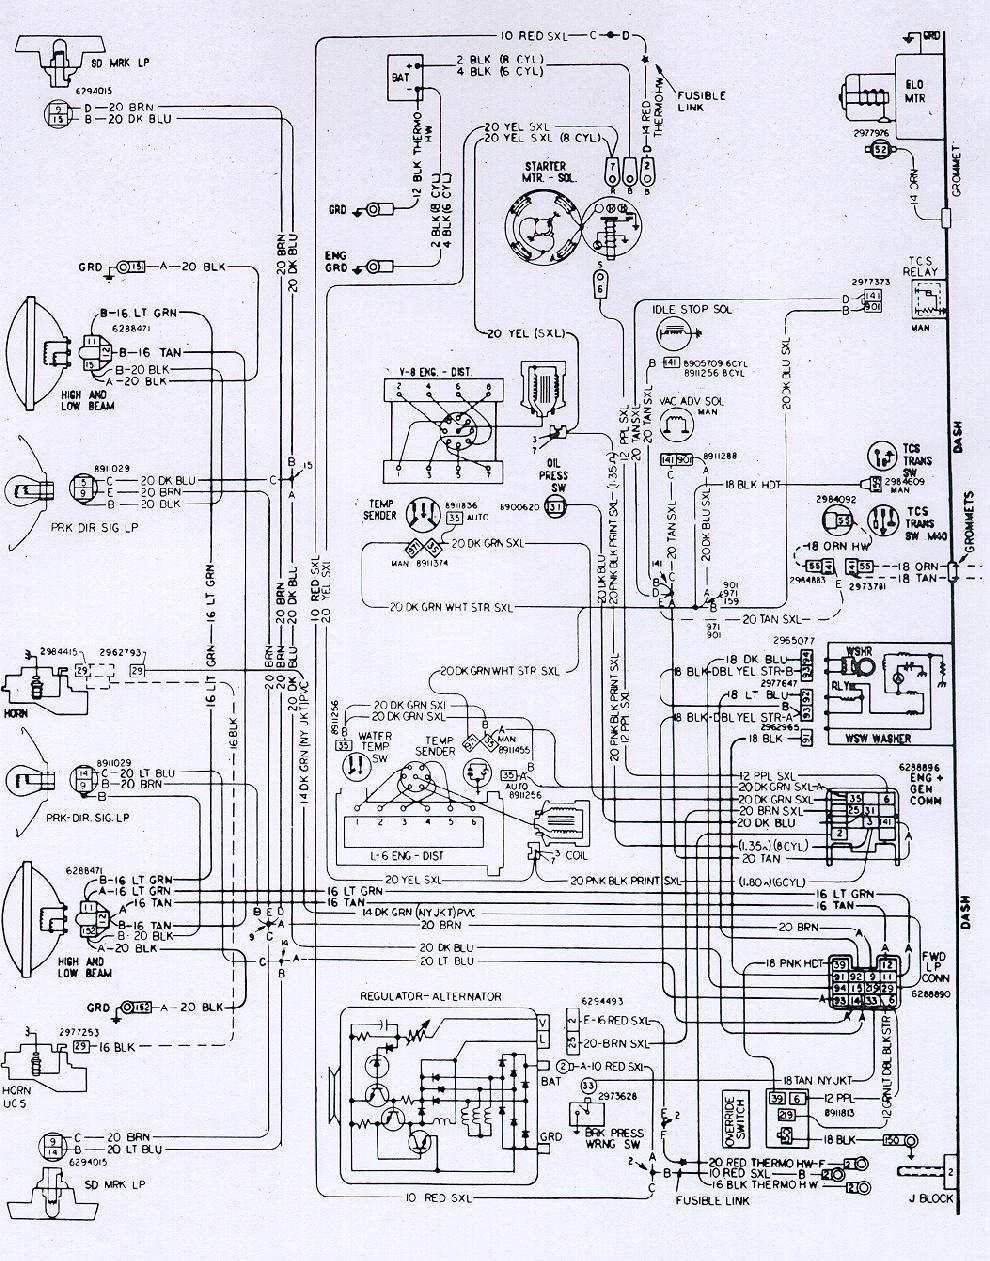 medium resolution of 1972 camaro wiring diagram electrical diagrams schematics 1972 corvette fuse box 1971 camaro fuse box diagram